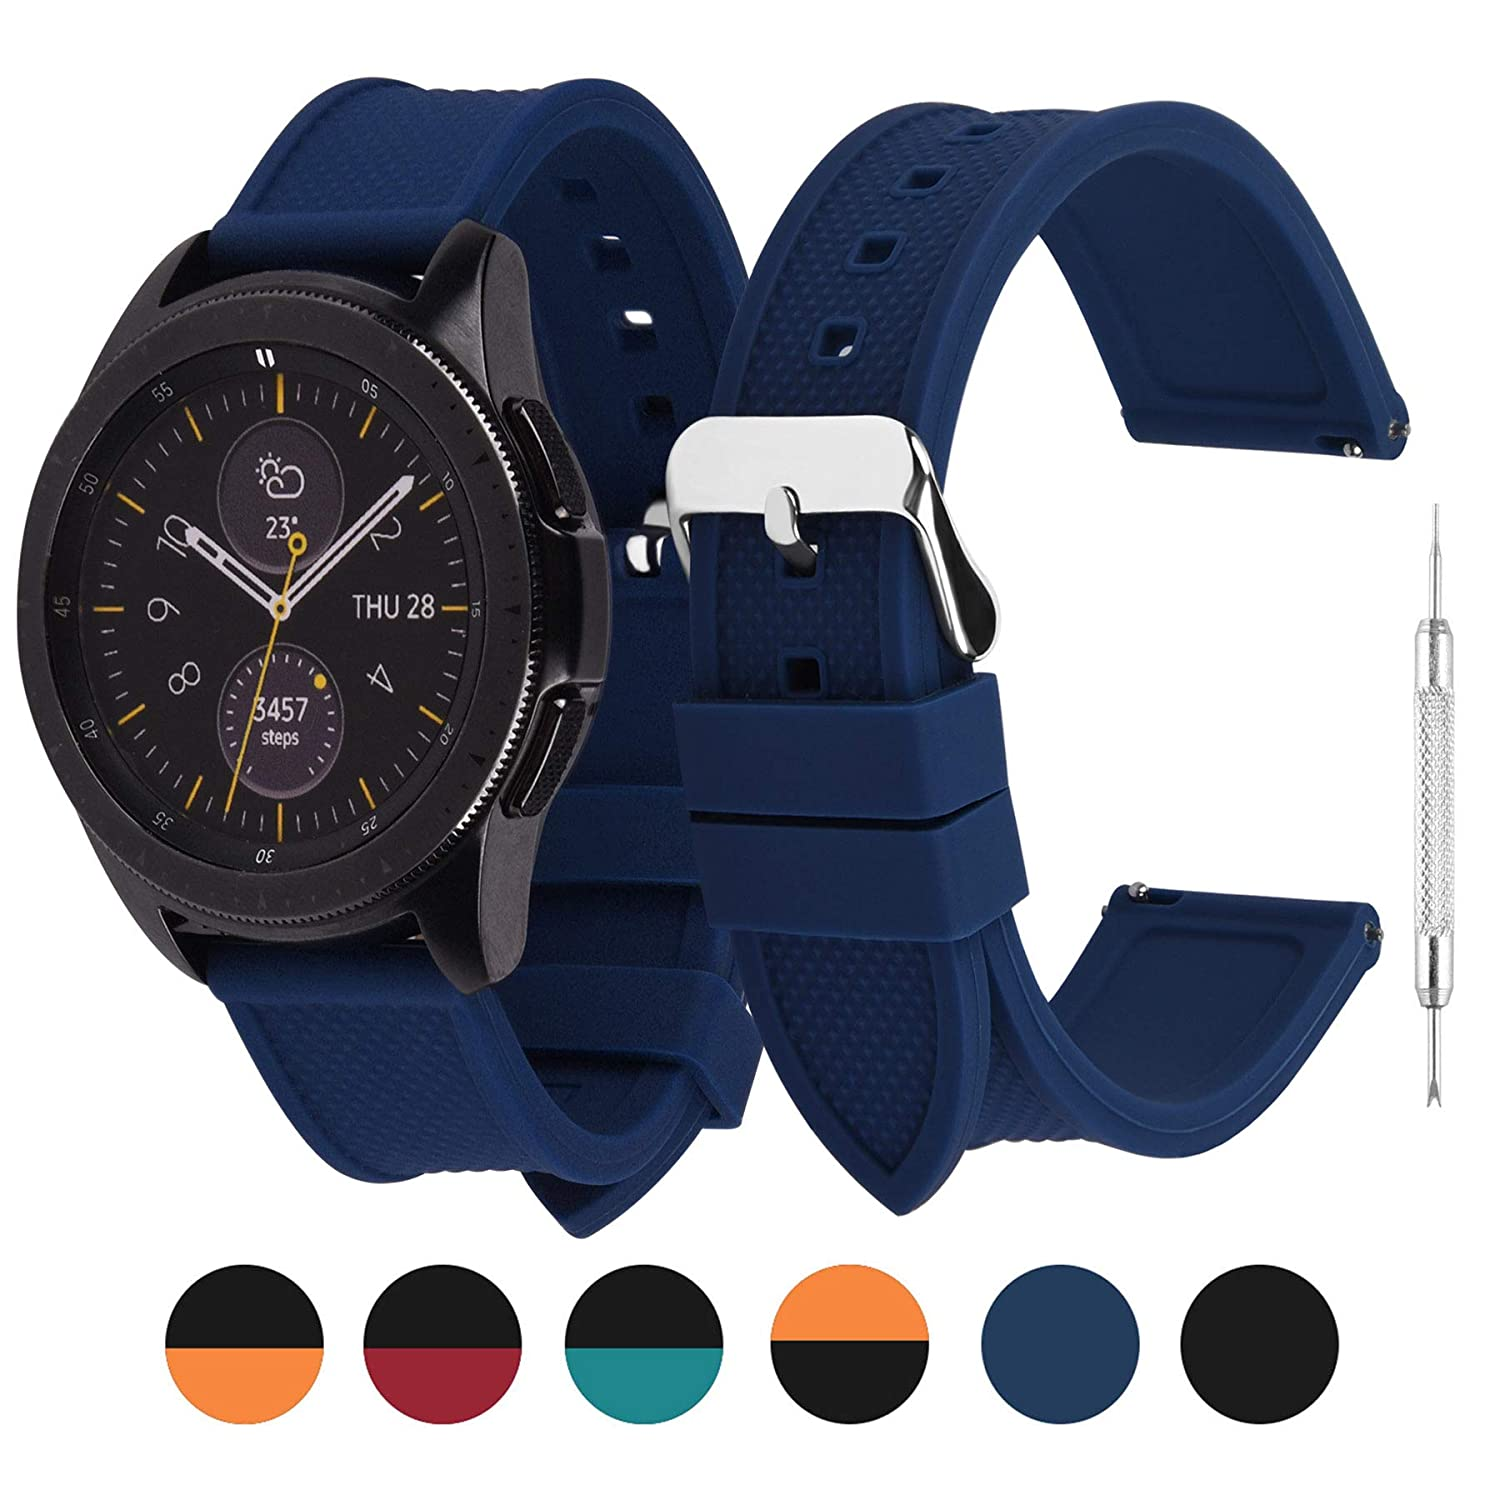 6 Colors Silicone Fullmosa Watch Band 18mm/20mm/22mm Compatible Huawei Watch, Samsung Galaxy Watch,Samsung Gear S3 Classic/Frontier/Galaxy 46mm Watch, Moto 360 2nd Gen/Amazfit Bip